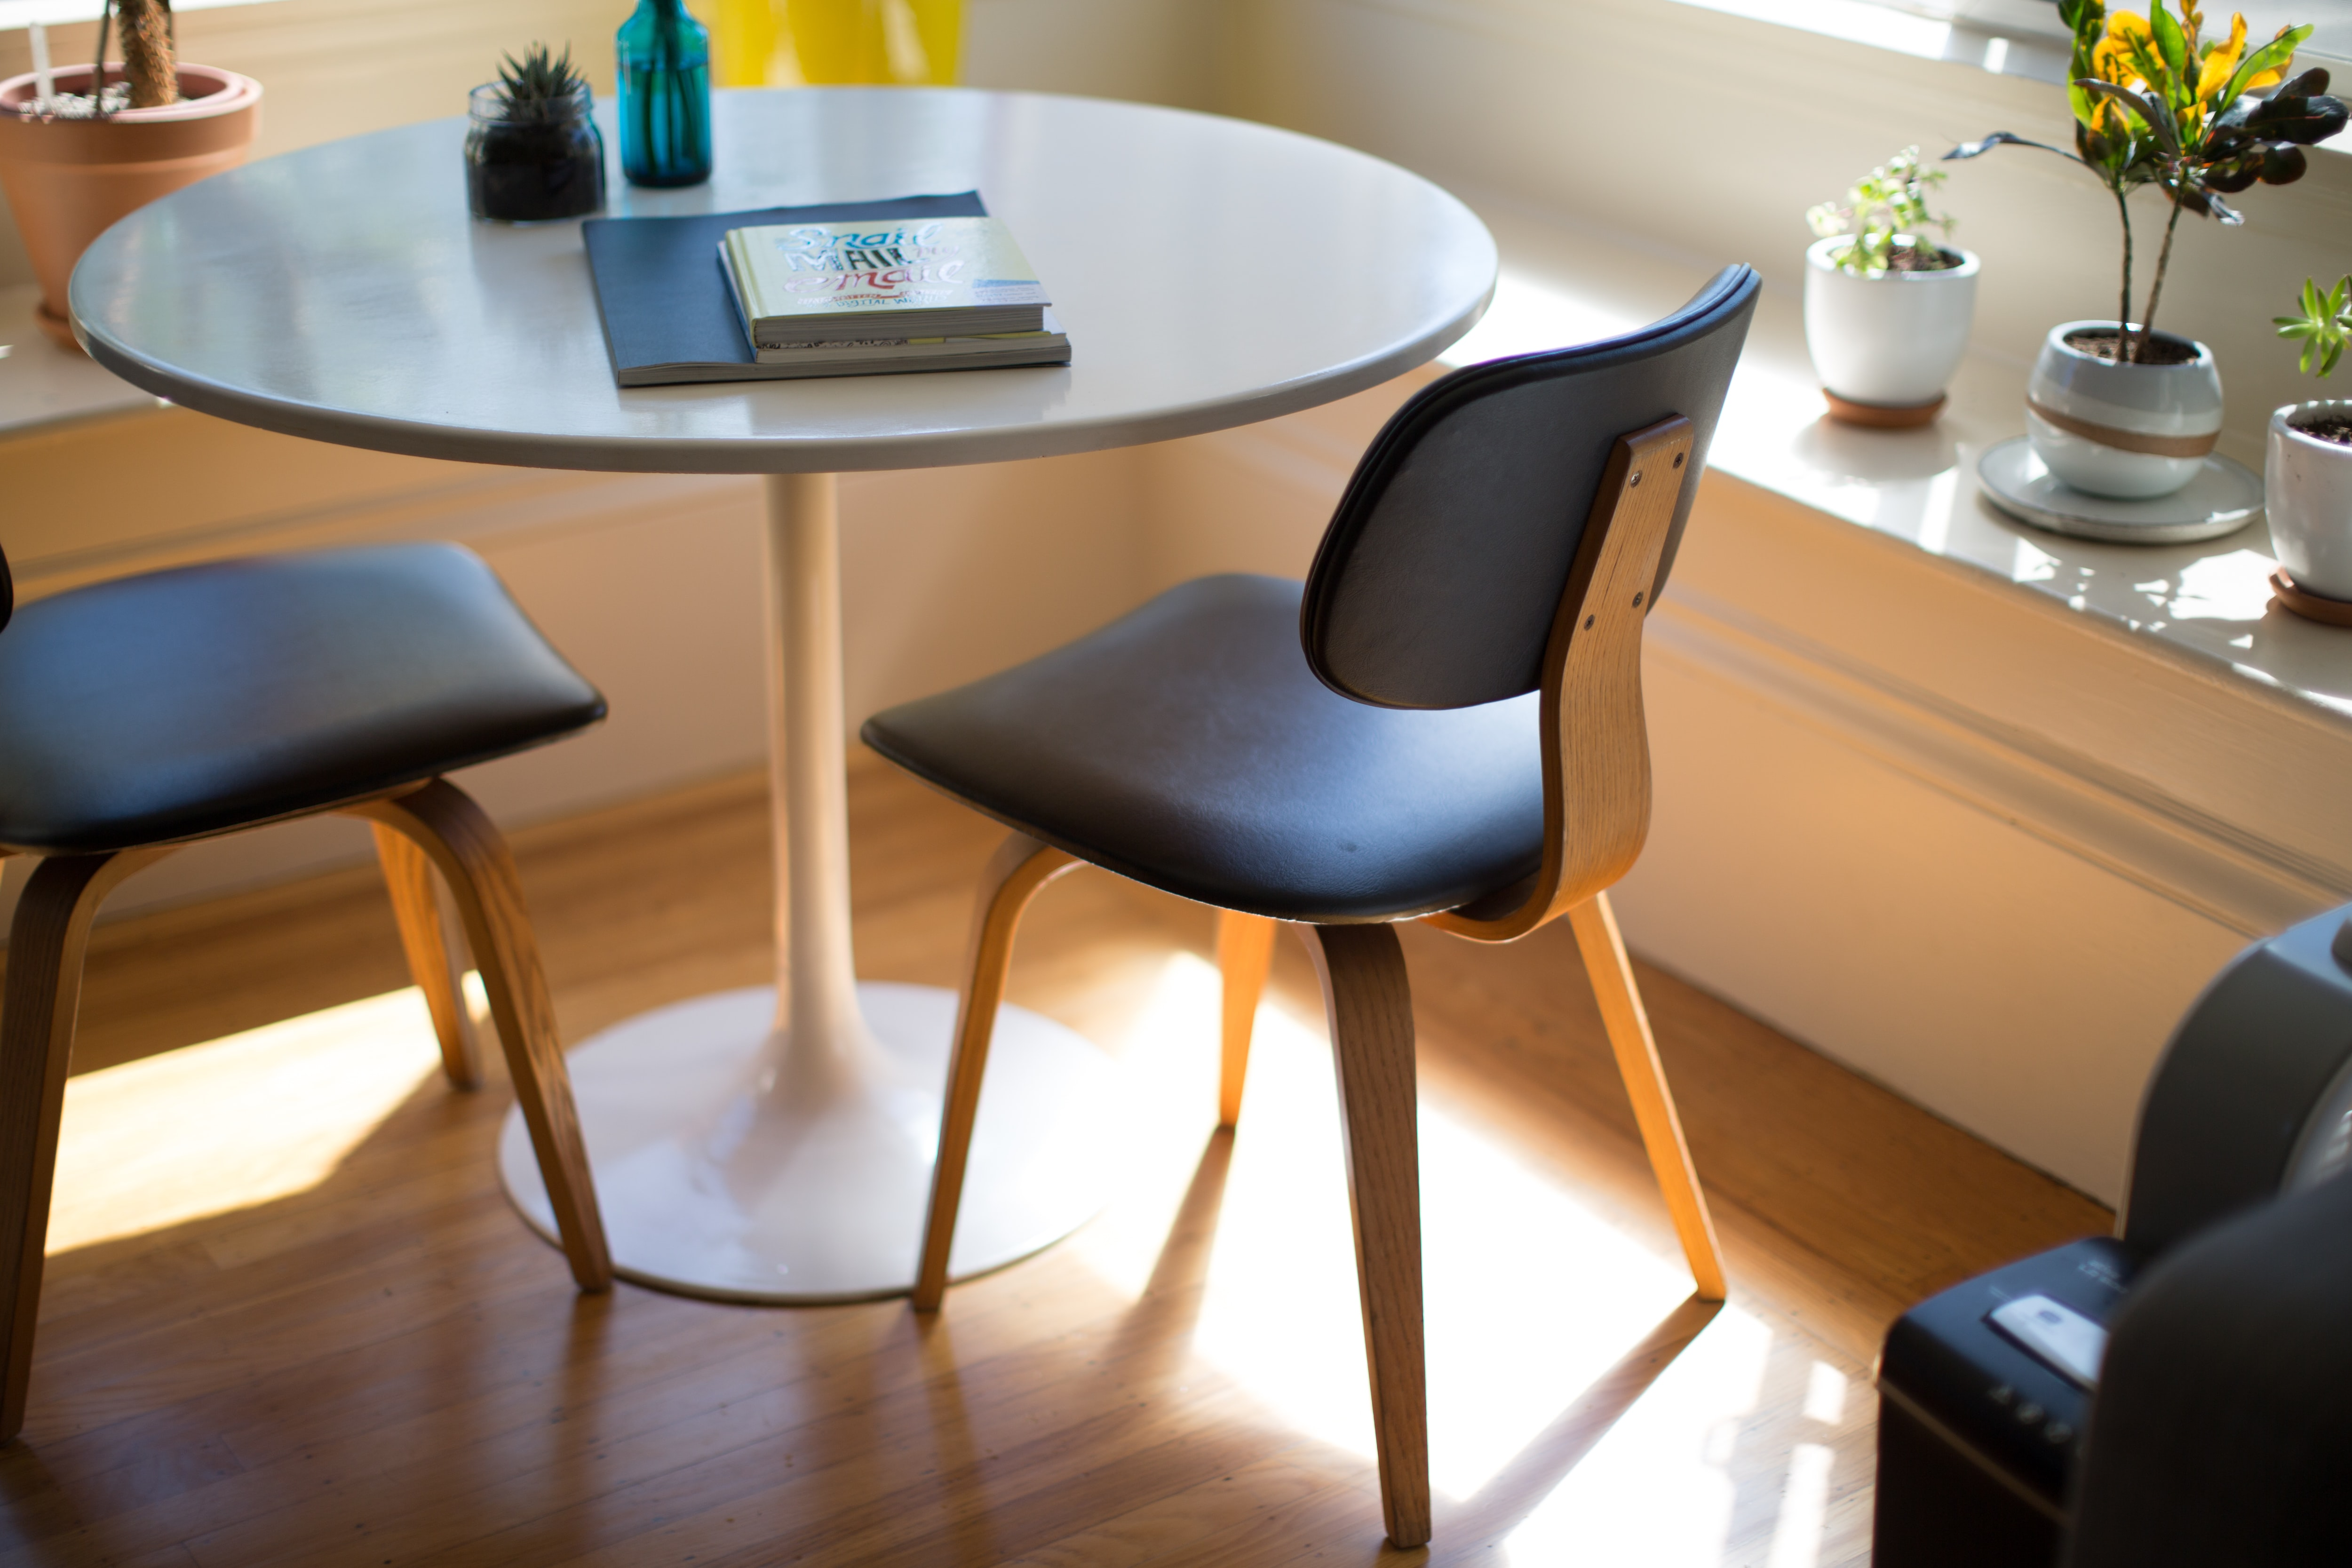 Small chairs next to a round table at a corner of a bright room